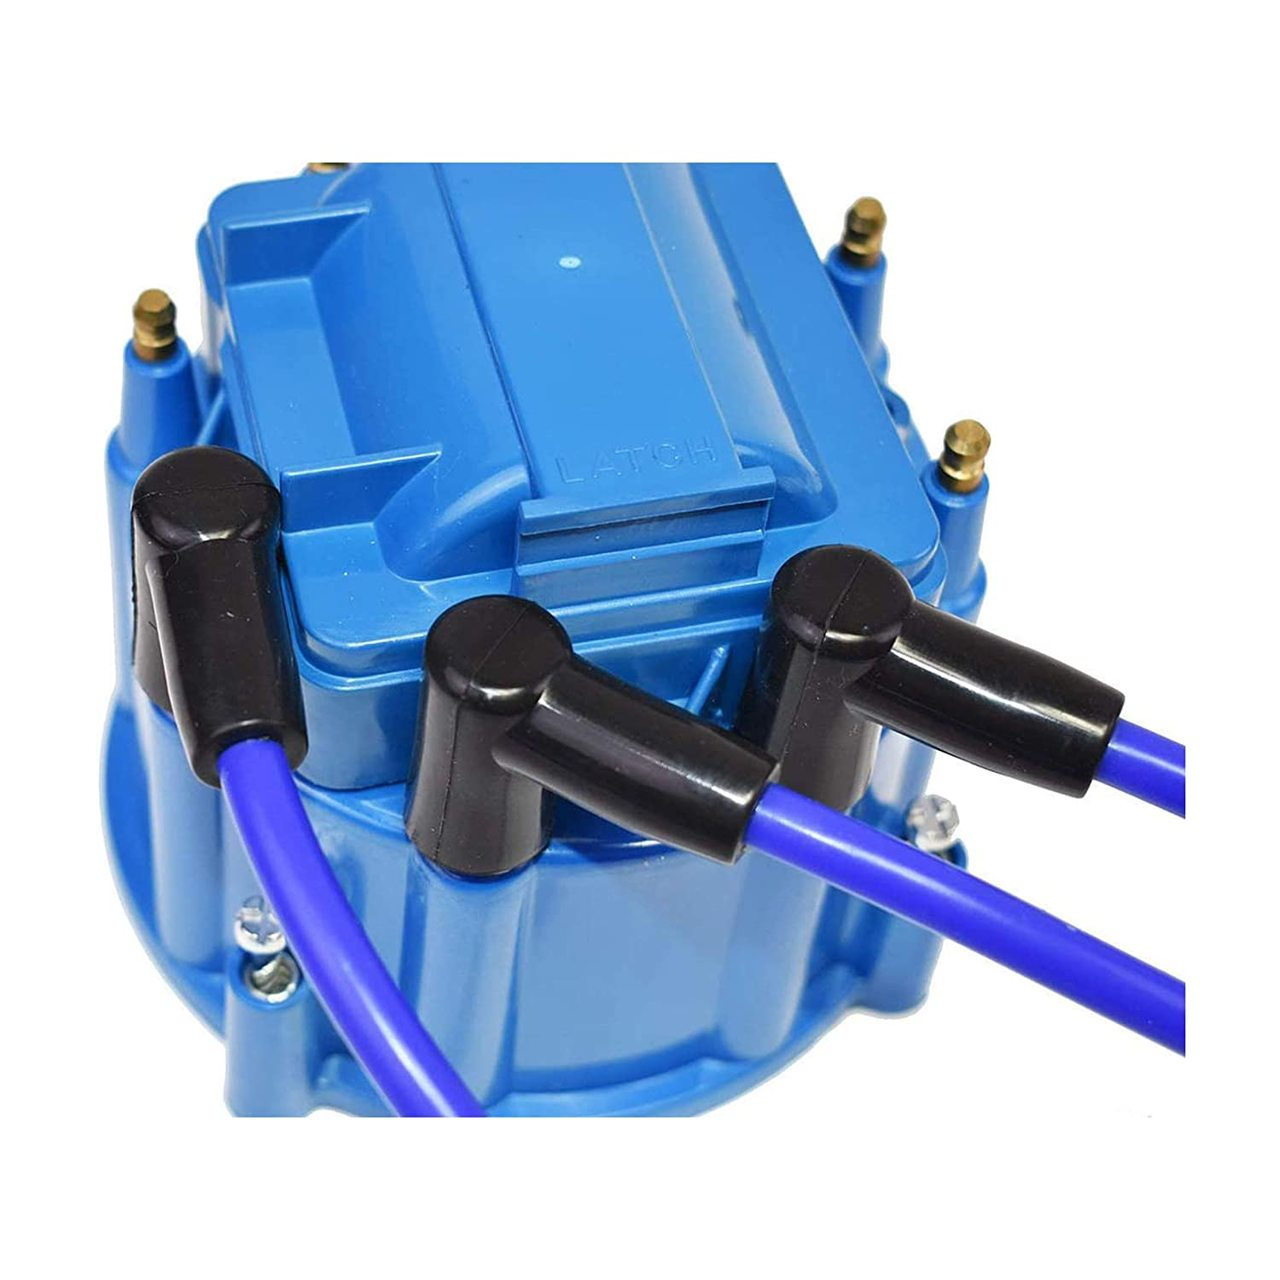 A-Team Performance 8.0mm Blue Silicone Spark Plug Wires BBF FE Big Block Ford Valve Cover Wires 332 351C 351M 352 360 361 370 390 400 427 428 429 460 514